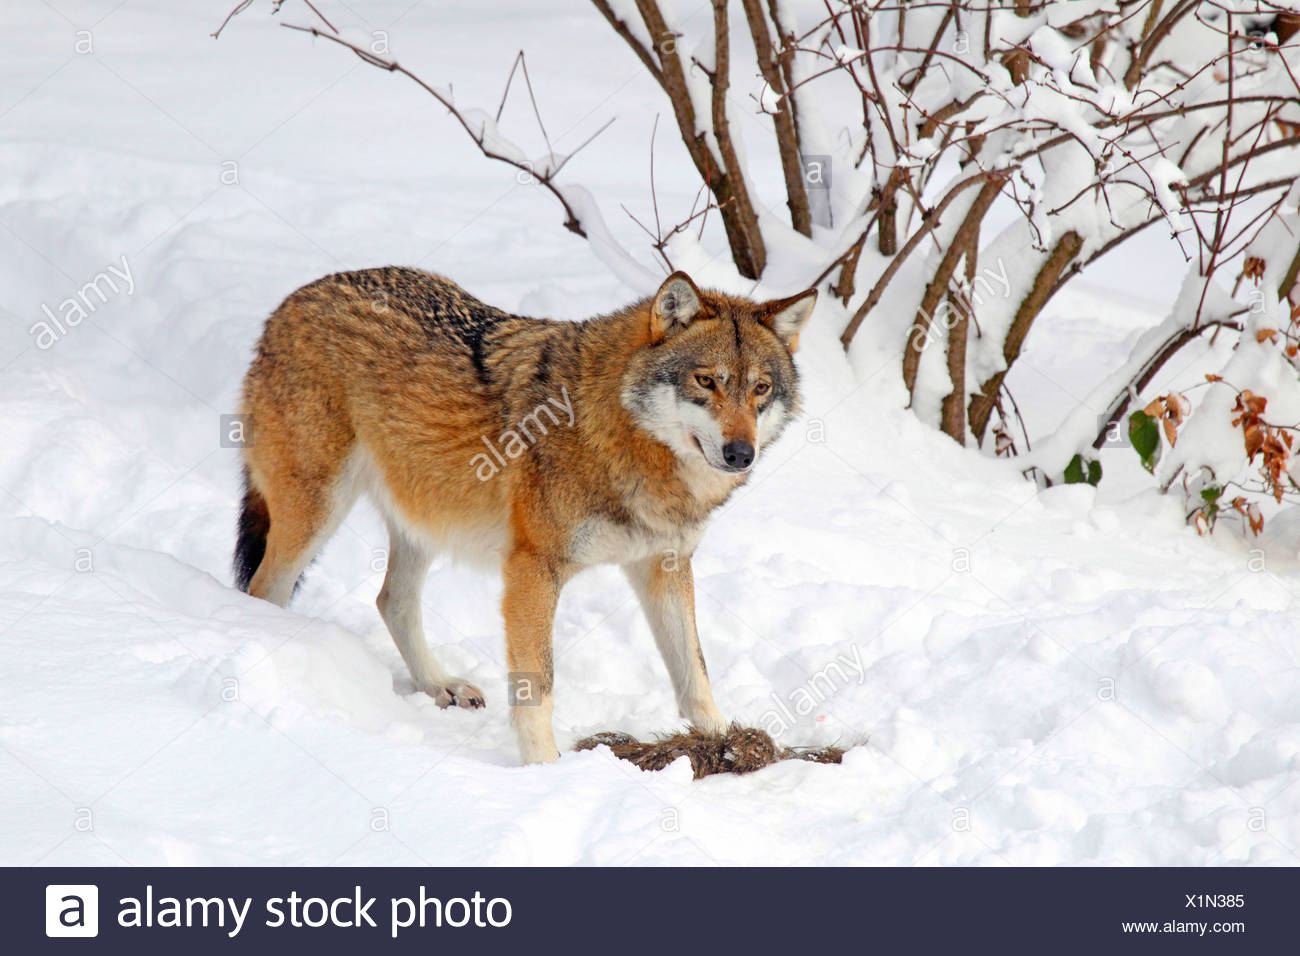 European gray wolf (Canis lupus lupus), in the snow, Germany - Stock Image